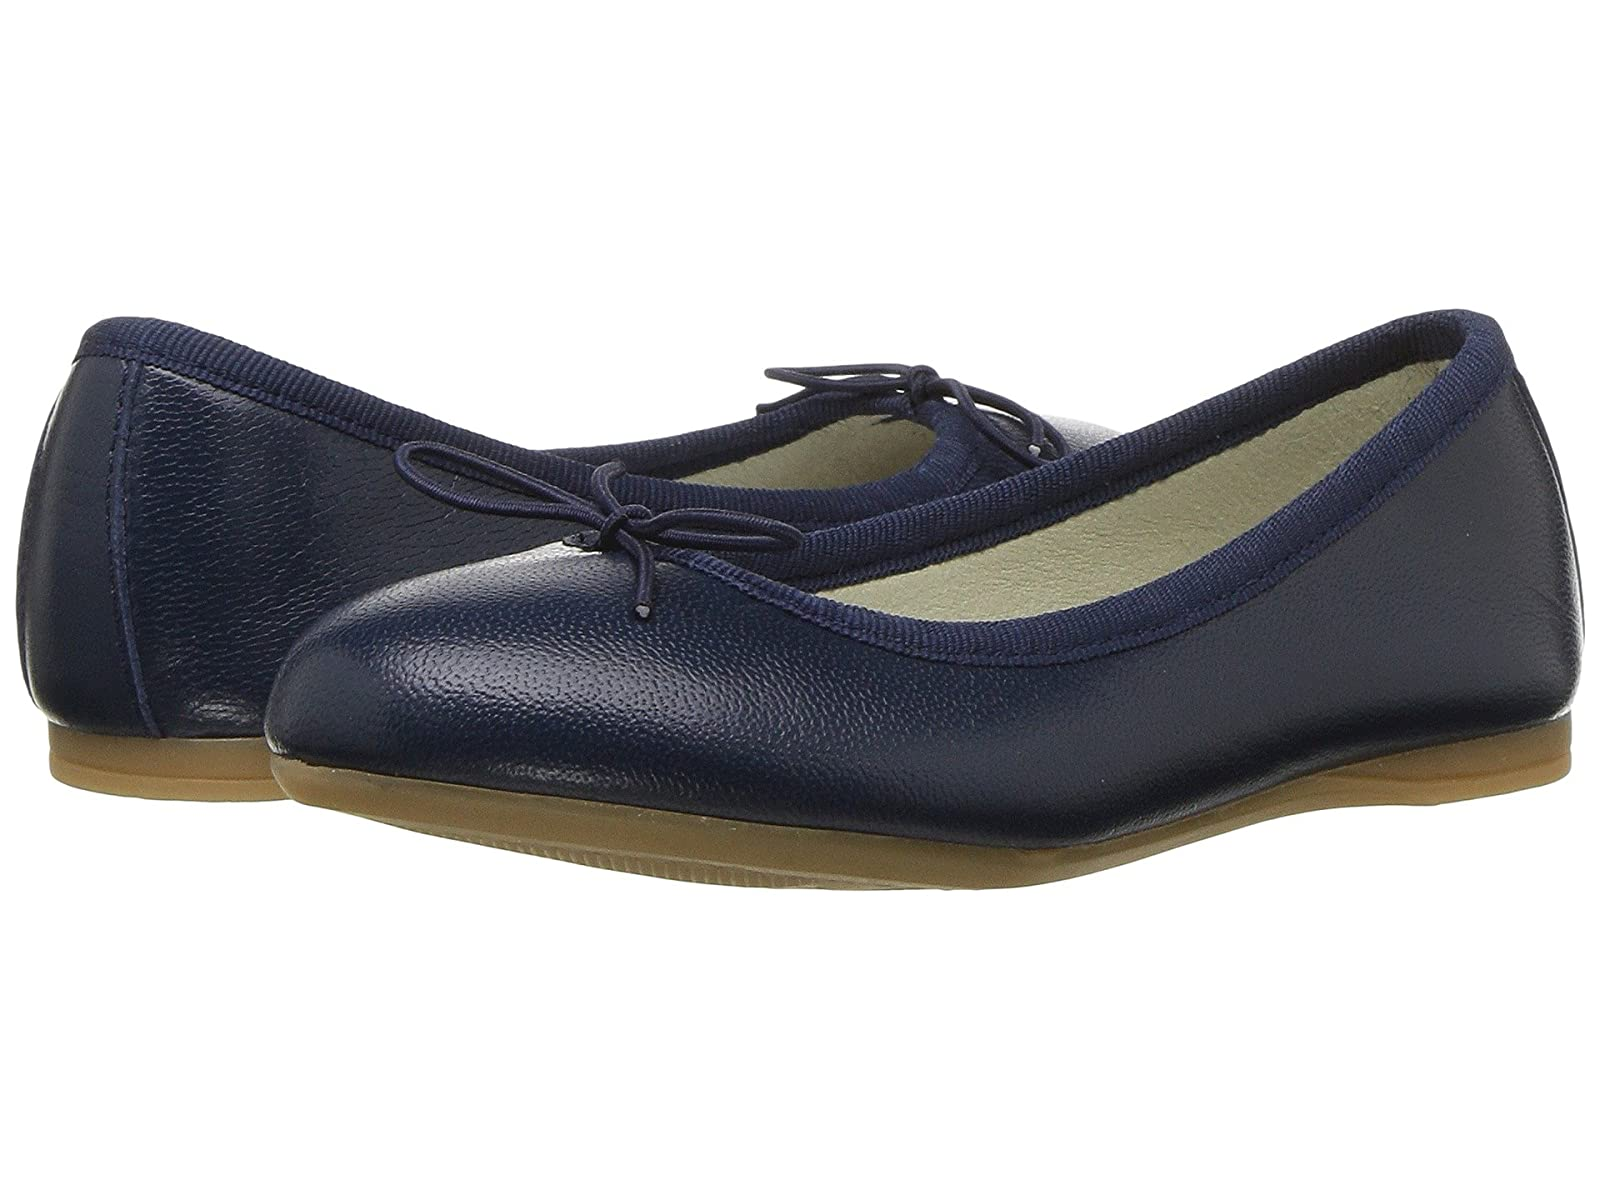 Conguitos IV124000 (Little Kid/Big Kid)Cheap and distinctive eye-catching shoes